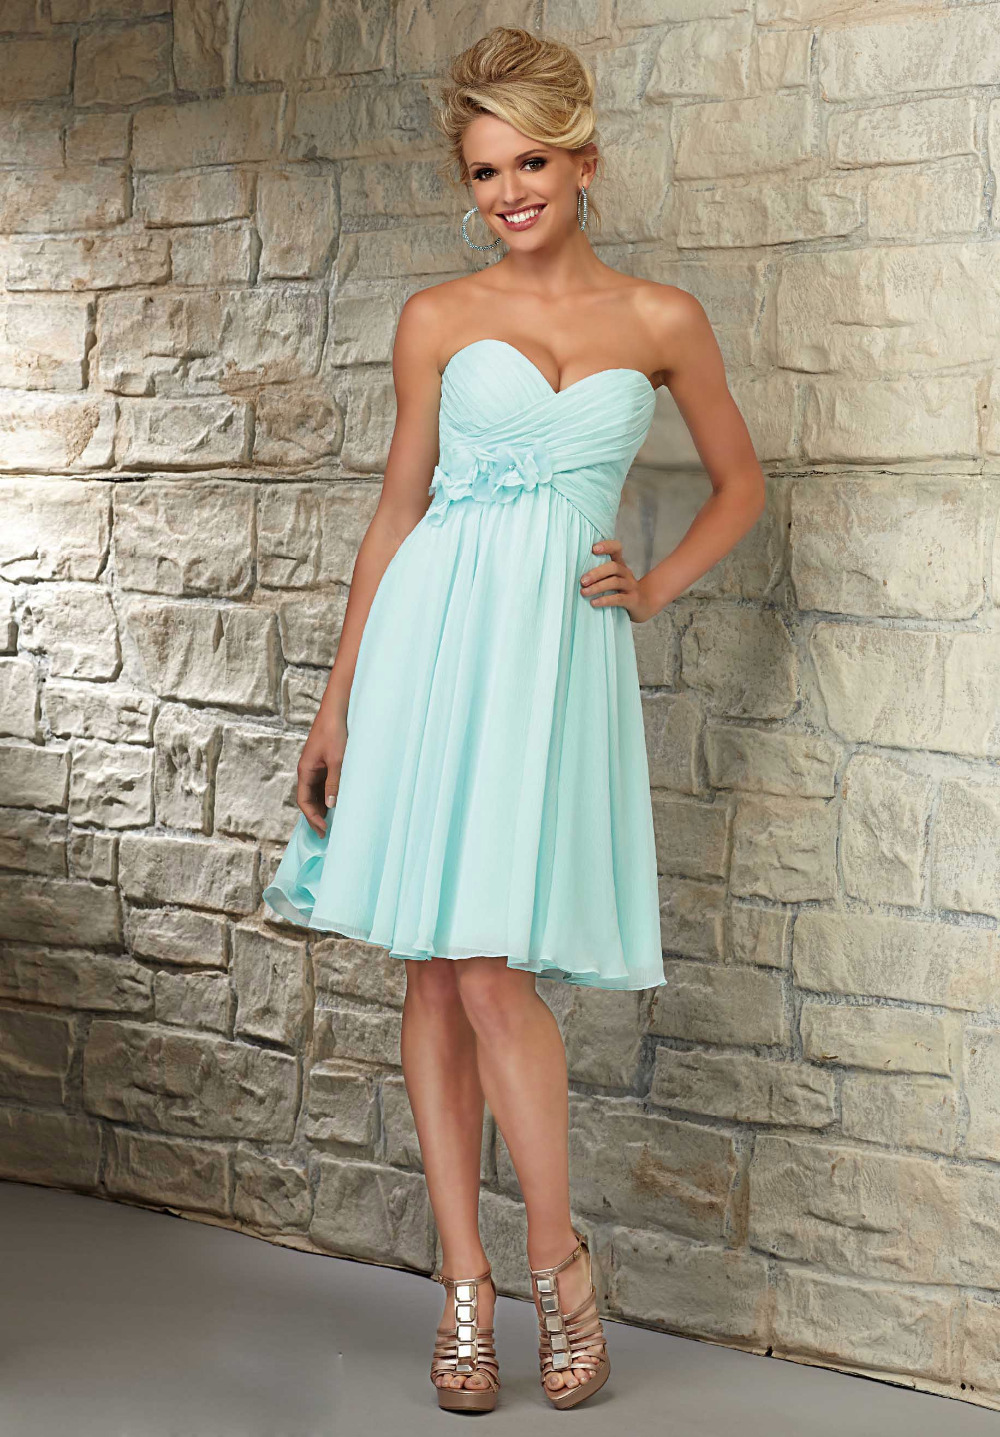 Medium Of Turquoise Bridesmaid Dresses